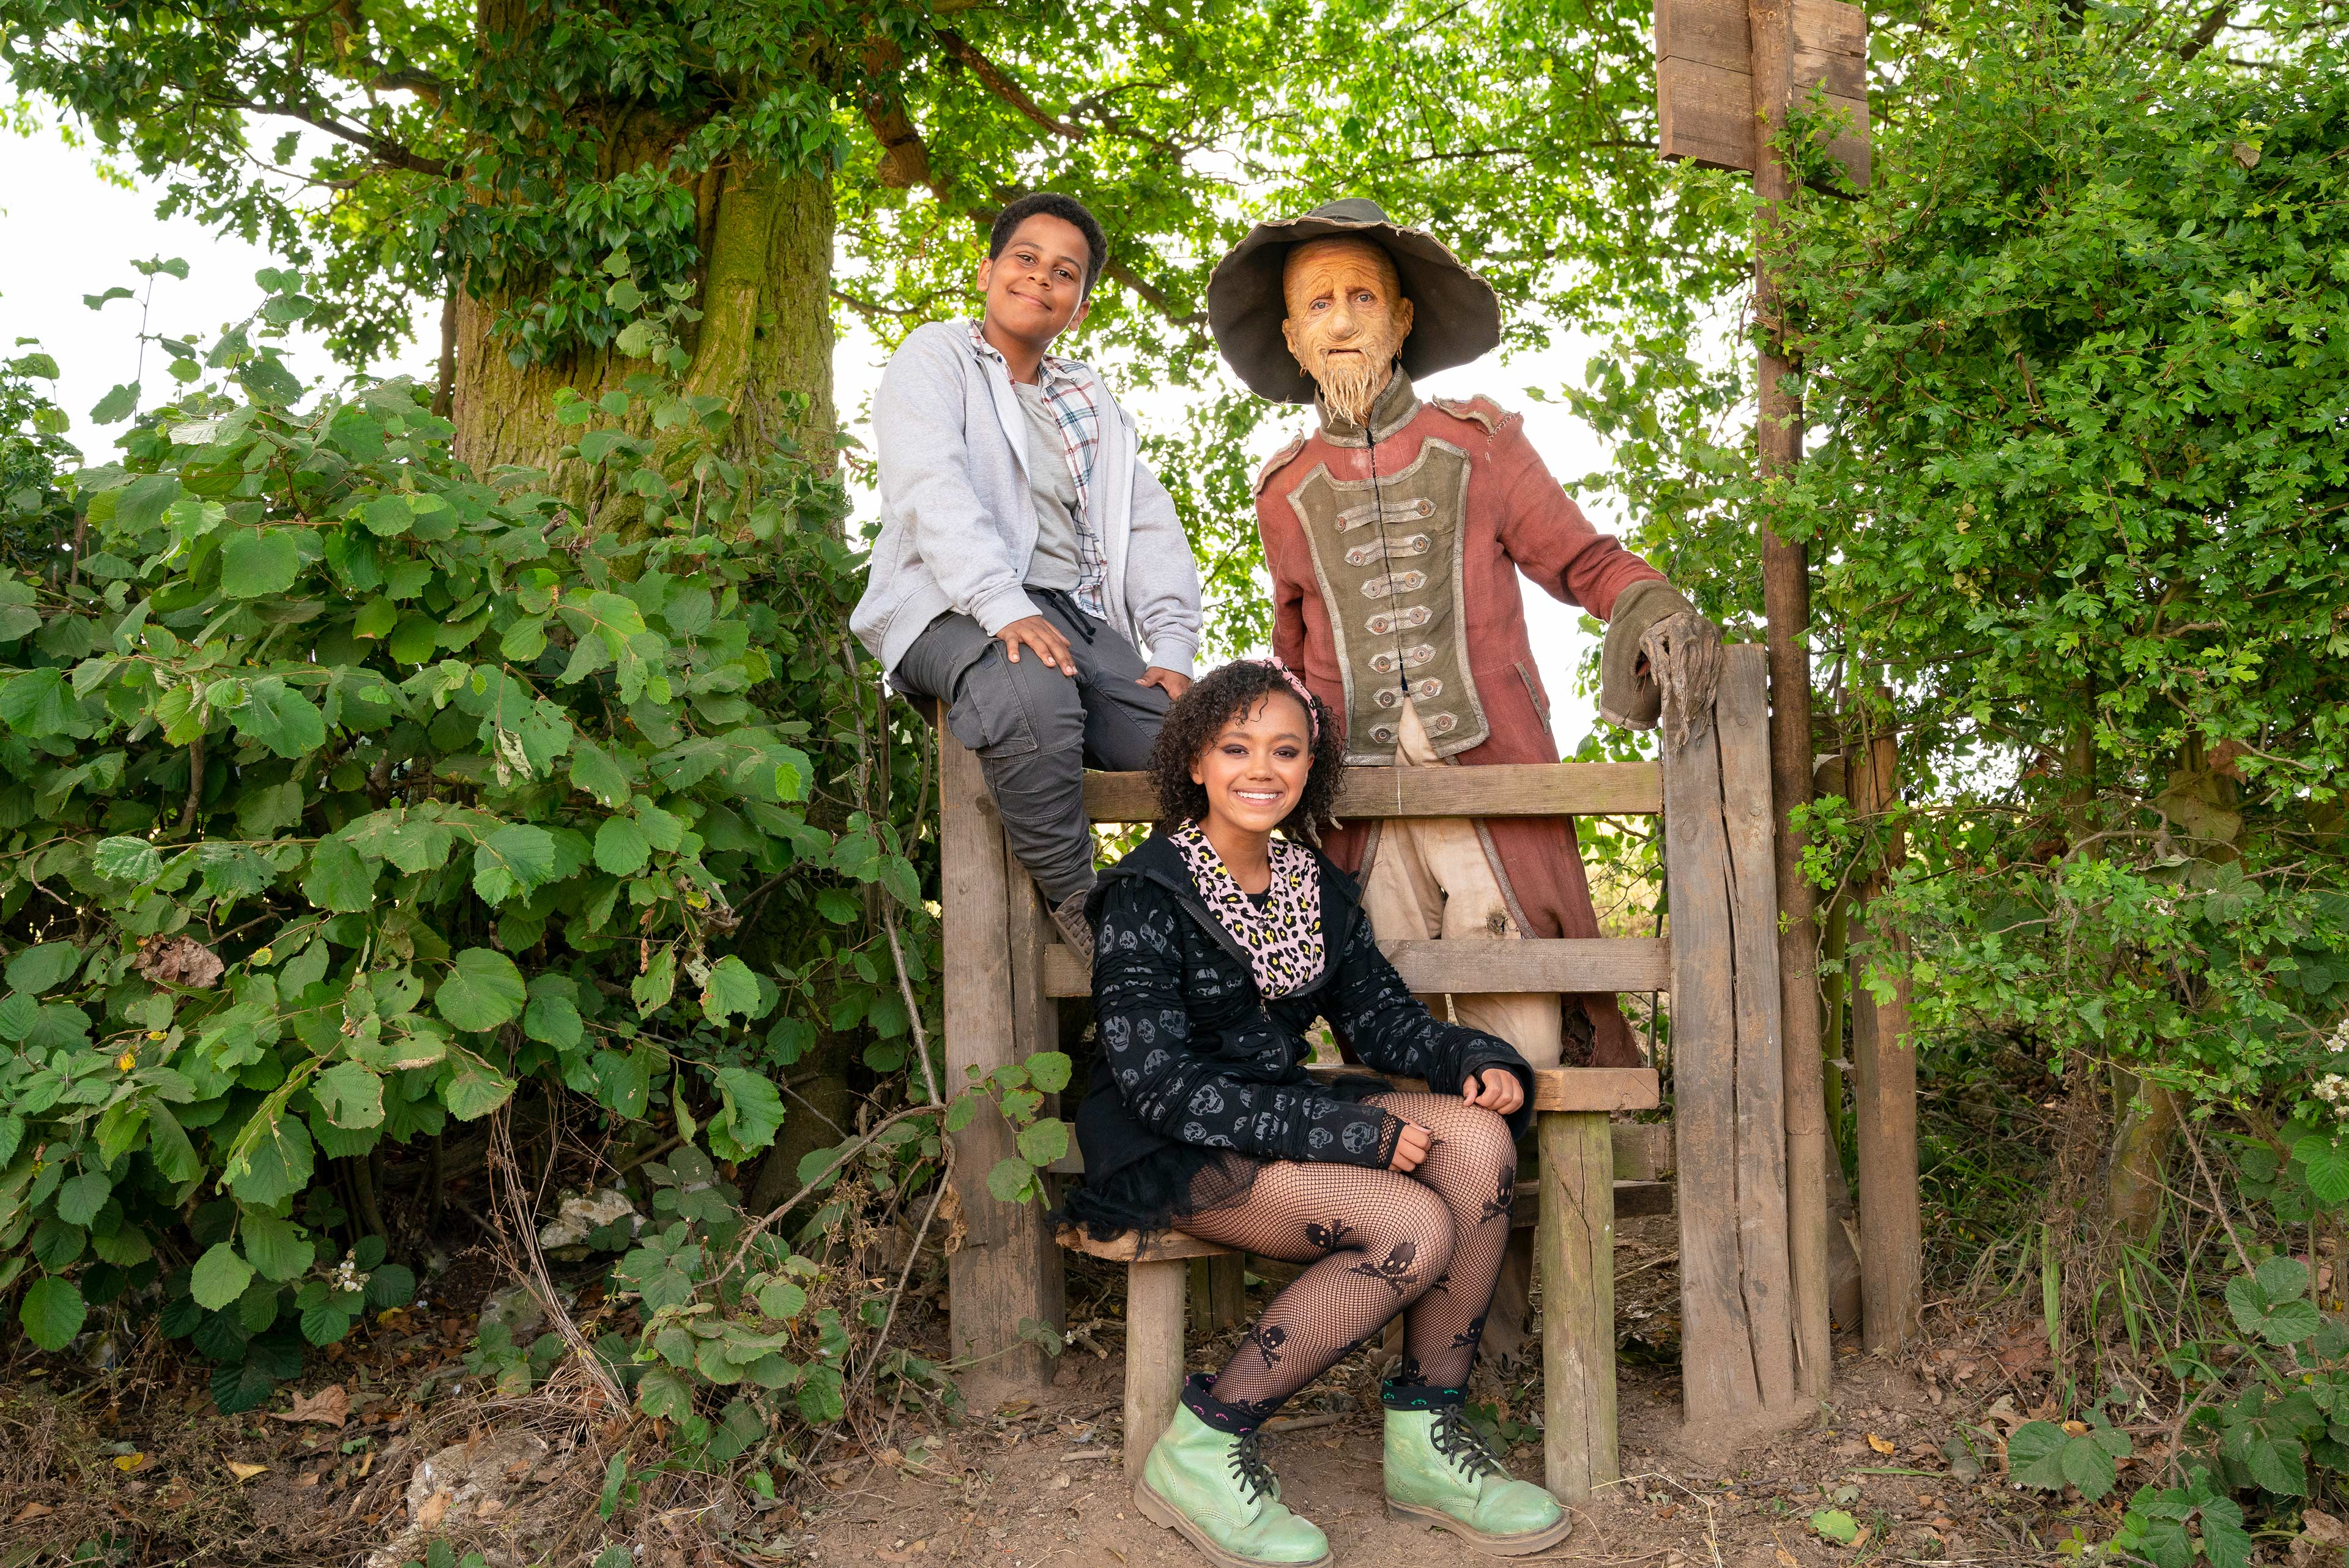 Worzel Gummidge Cast Announced